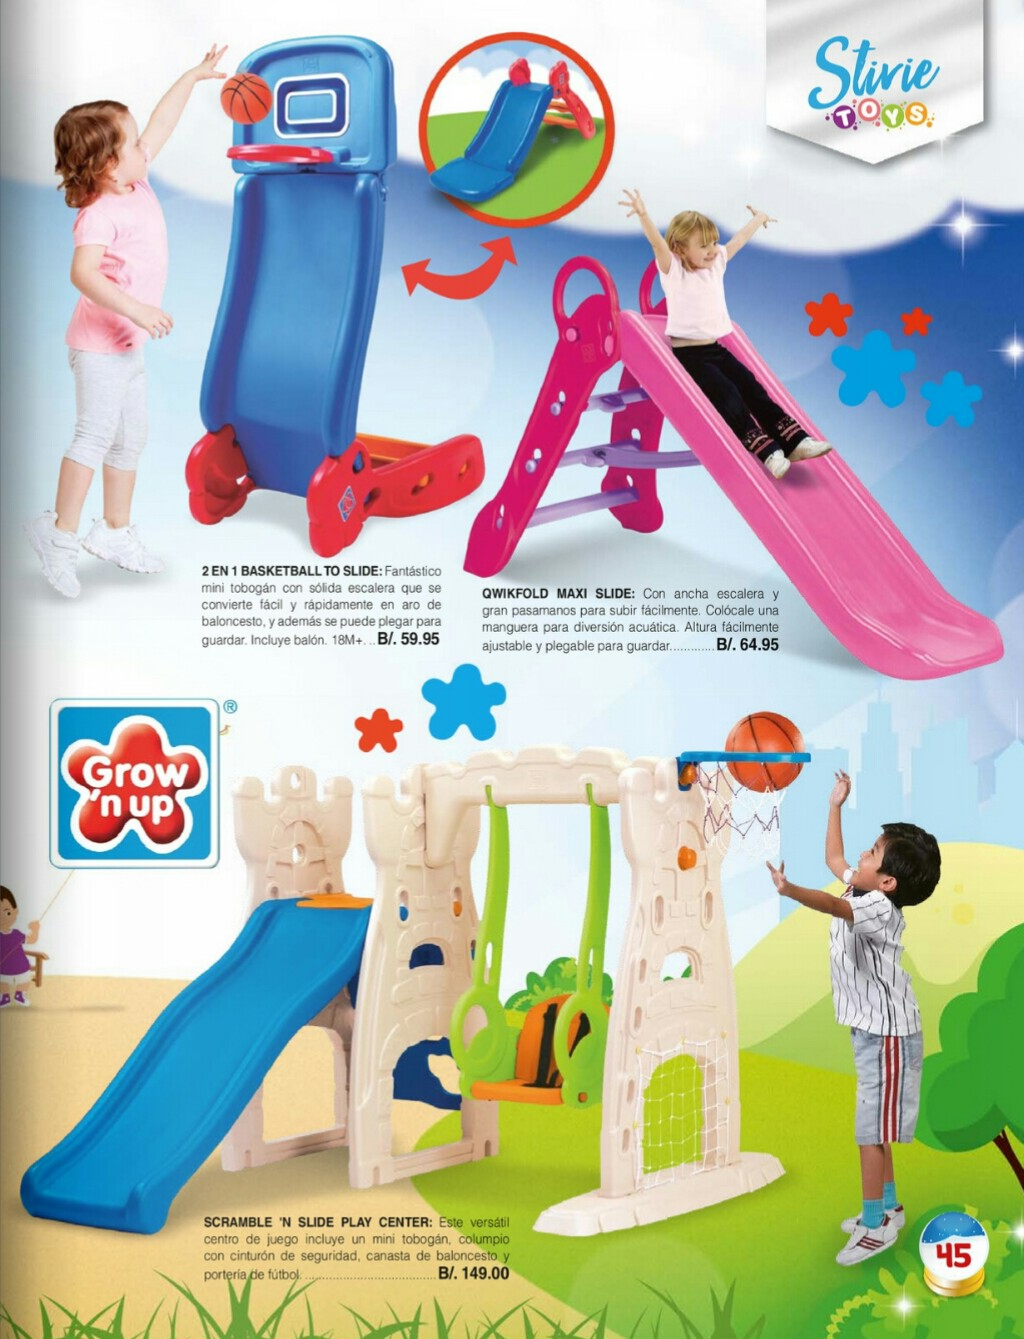 Catalogo juguetes Stivie toys 2018 p45